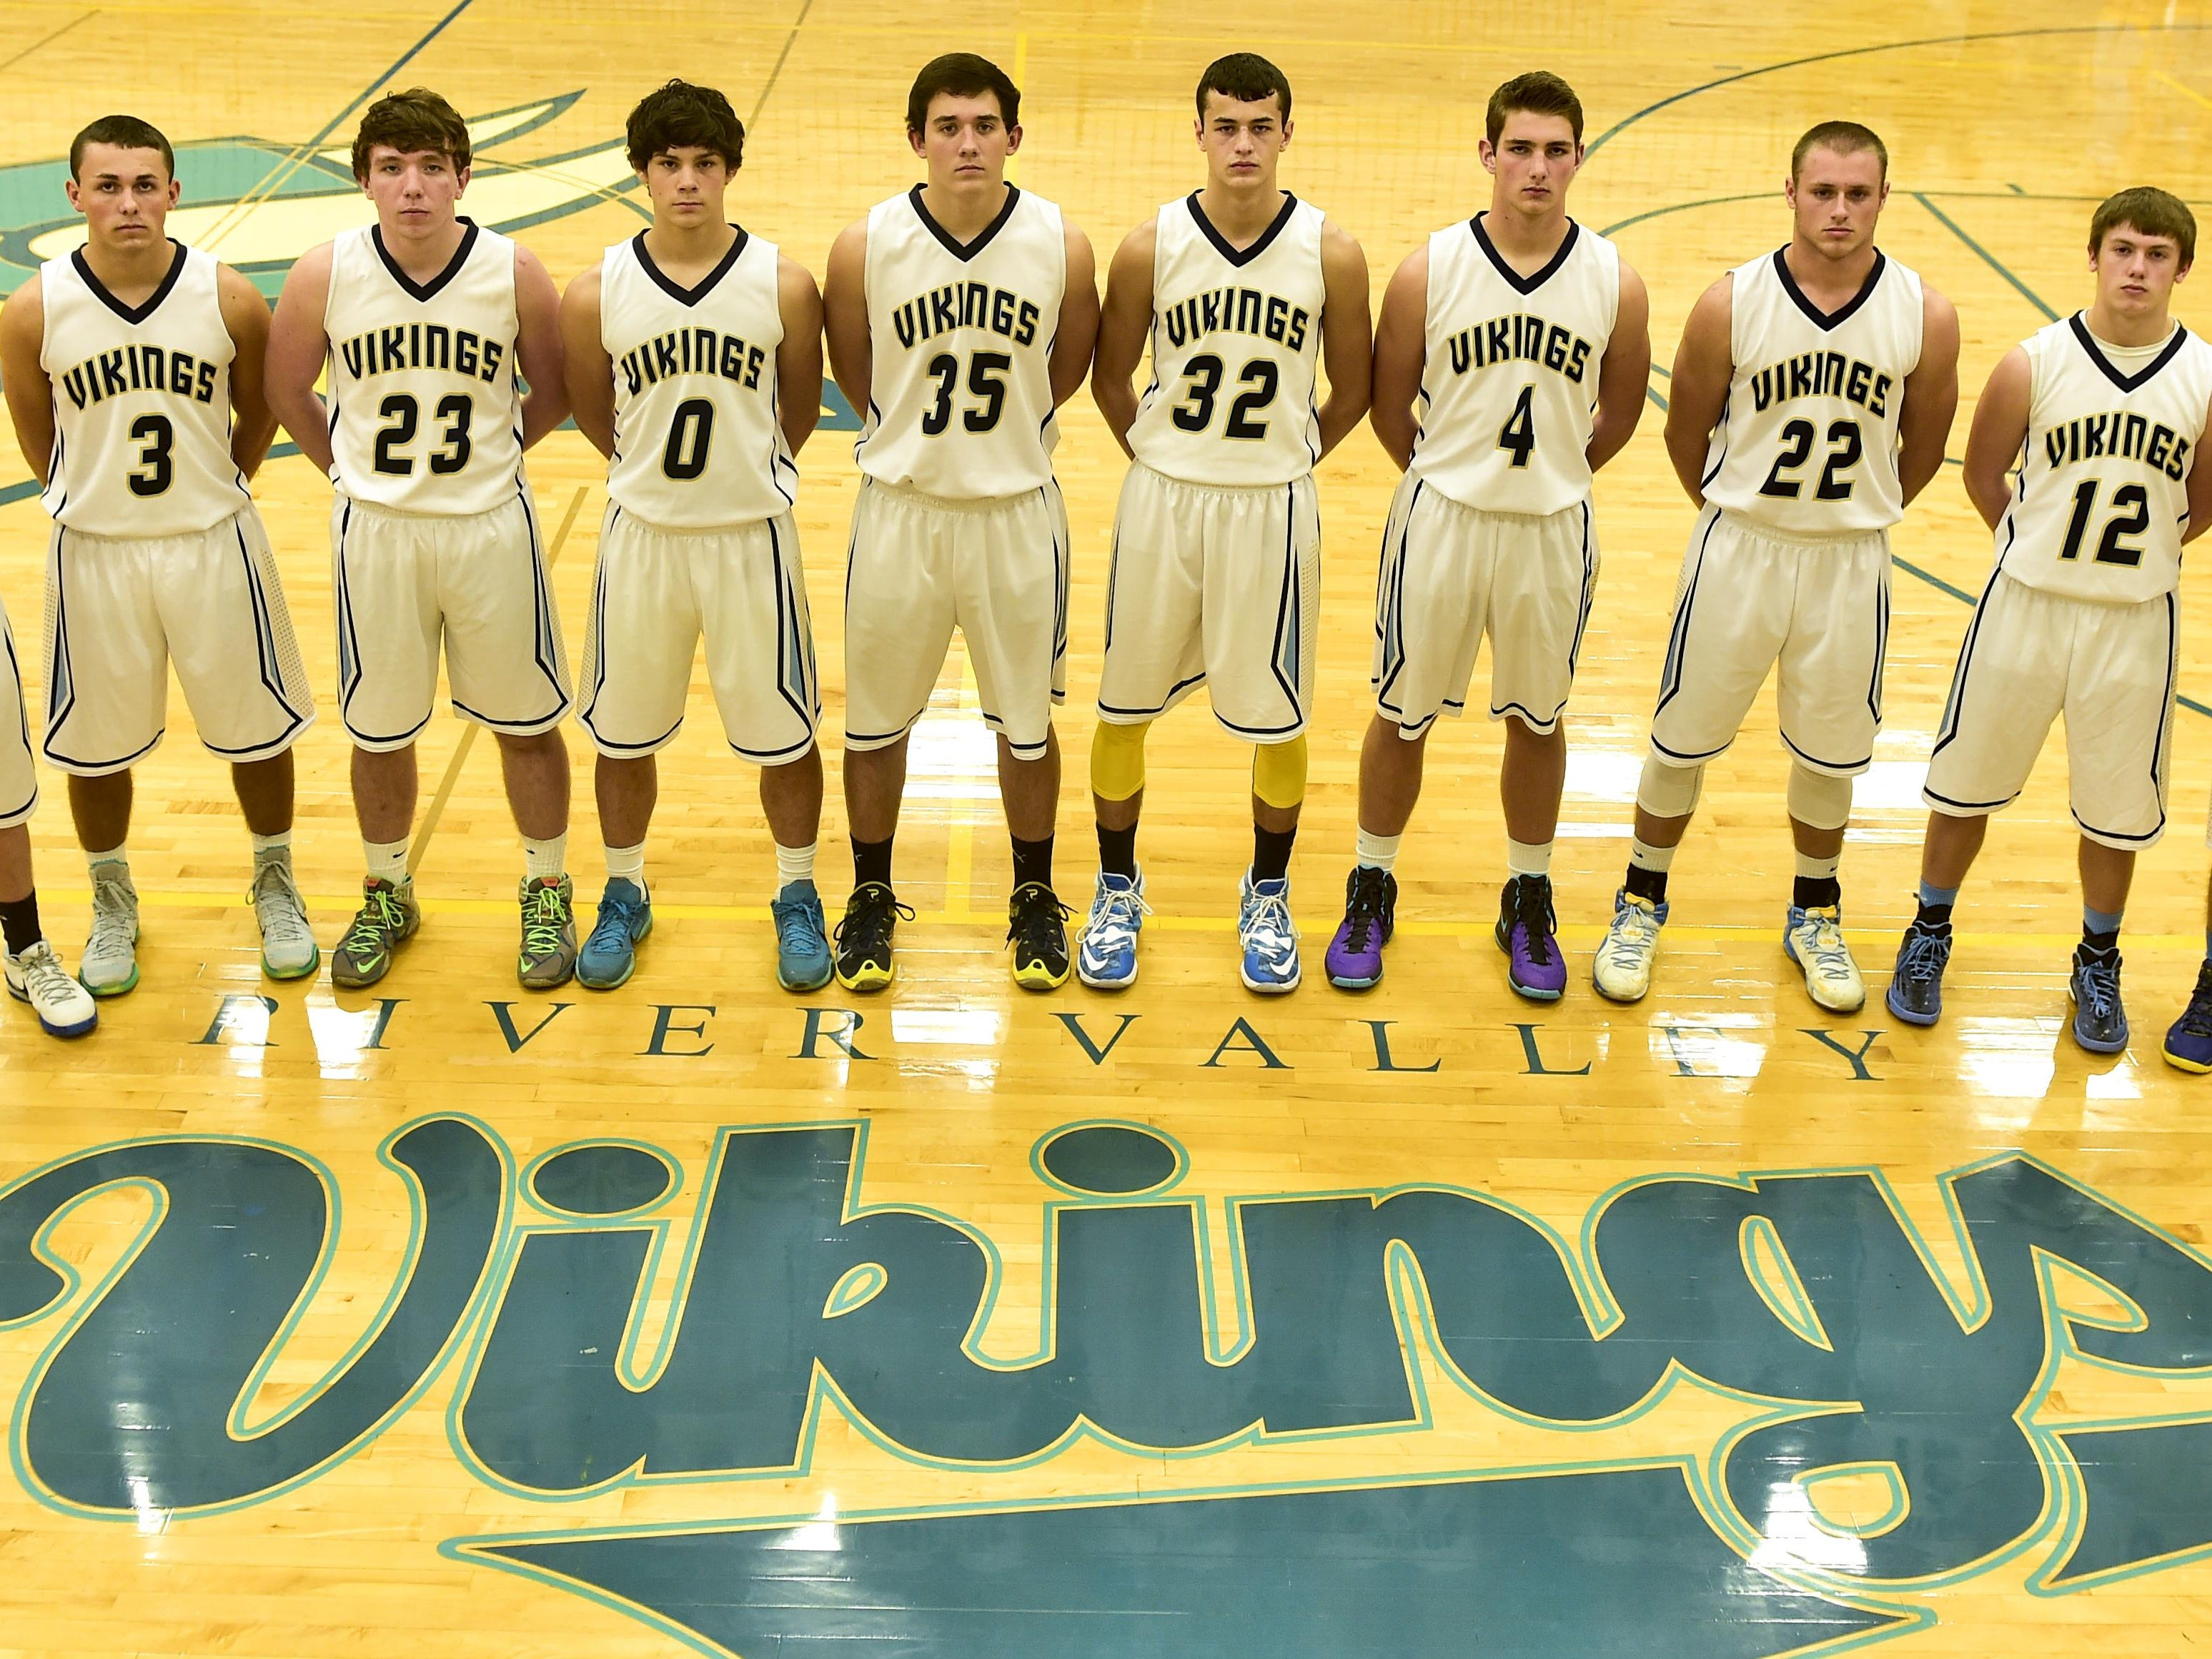 River Valley Boys Basketball 2015-2016 Row 1: (Left to Right) Hayden Wallace, Trent Waddell, Dustin Johns, Josh Ellwood, Tom Poorman, Danyon Hempy, Jax Harville, Carson Parsell, Gage Fogle, A.J. Issler